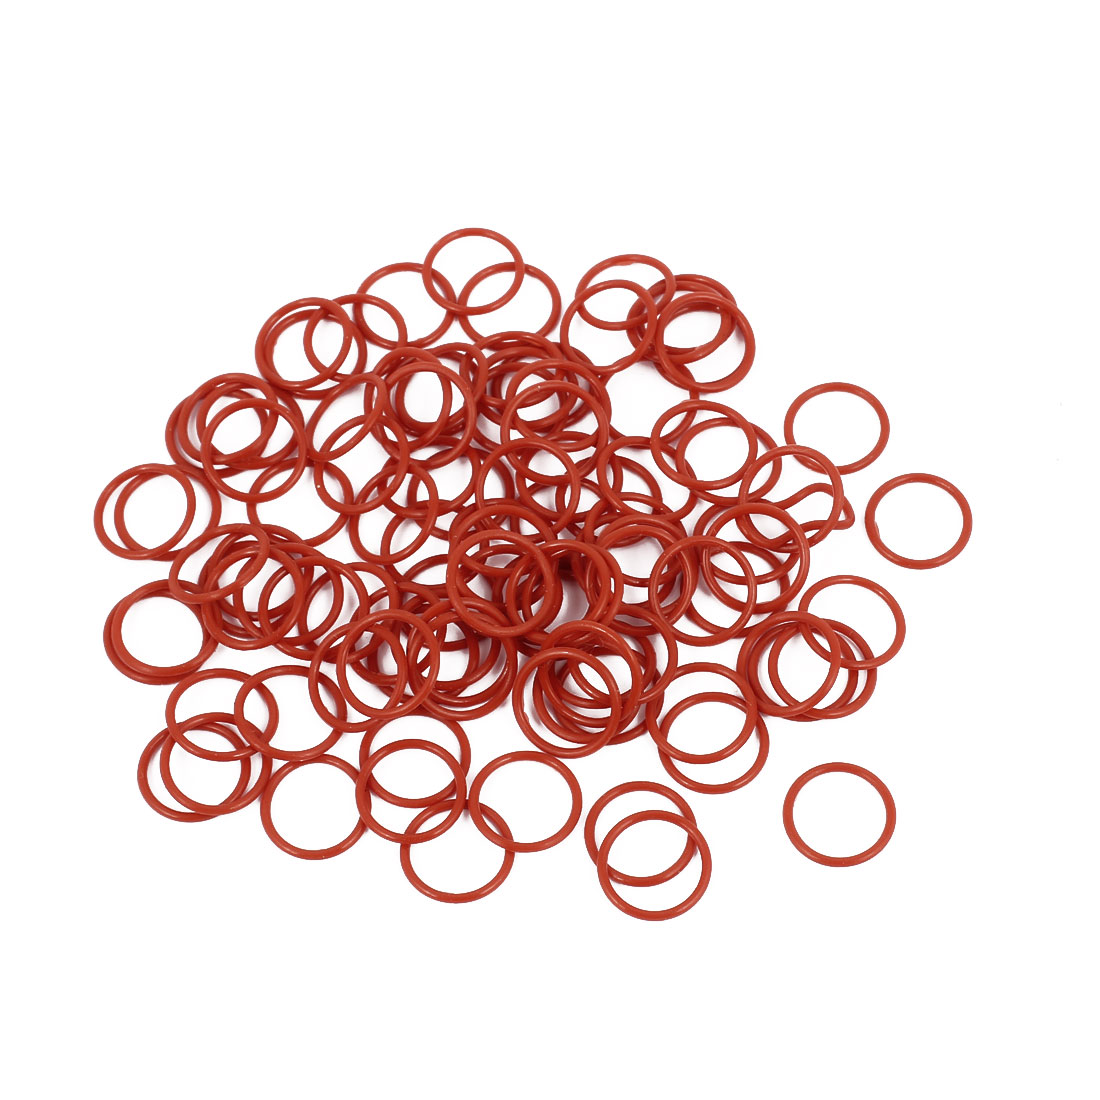 100Pcs 11mm x 1mm Rubber O-rings NBR Heat Resistant Sealing Ring Grommets Red